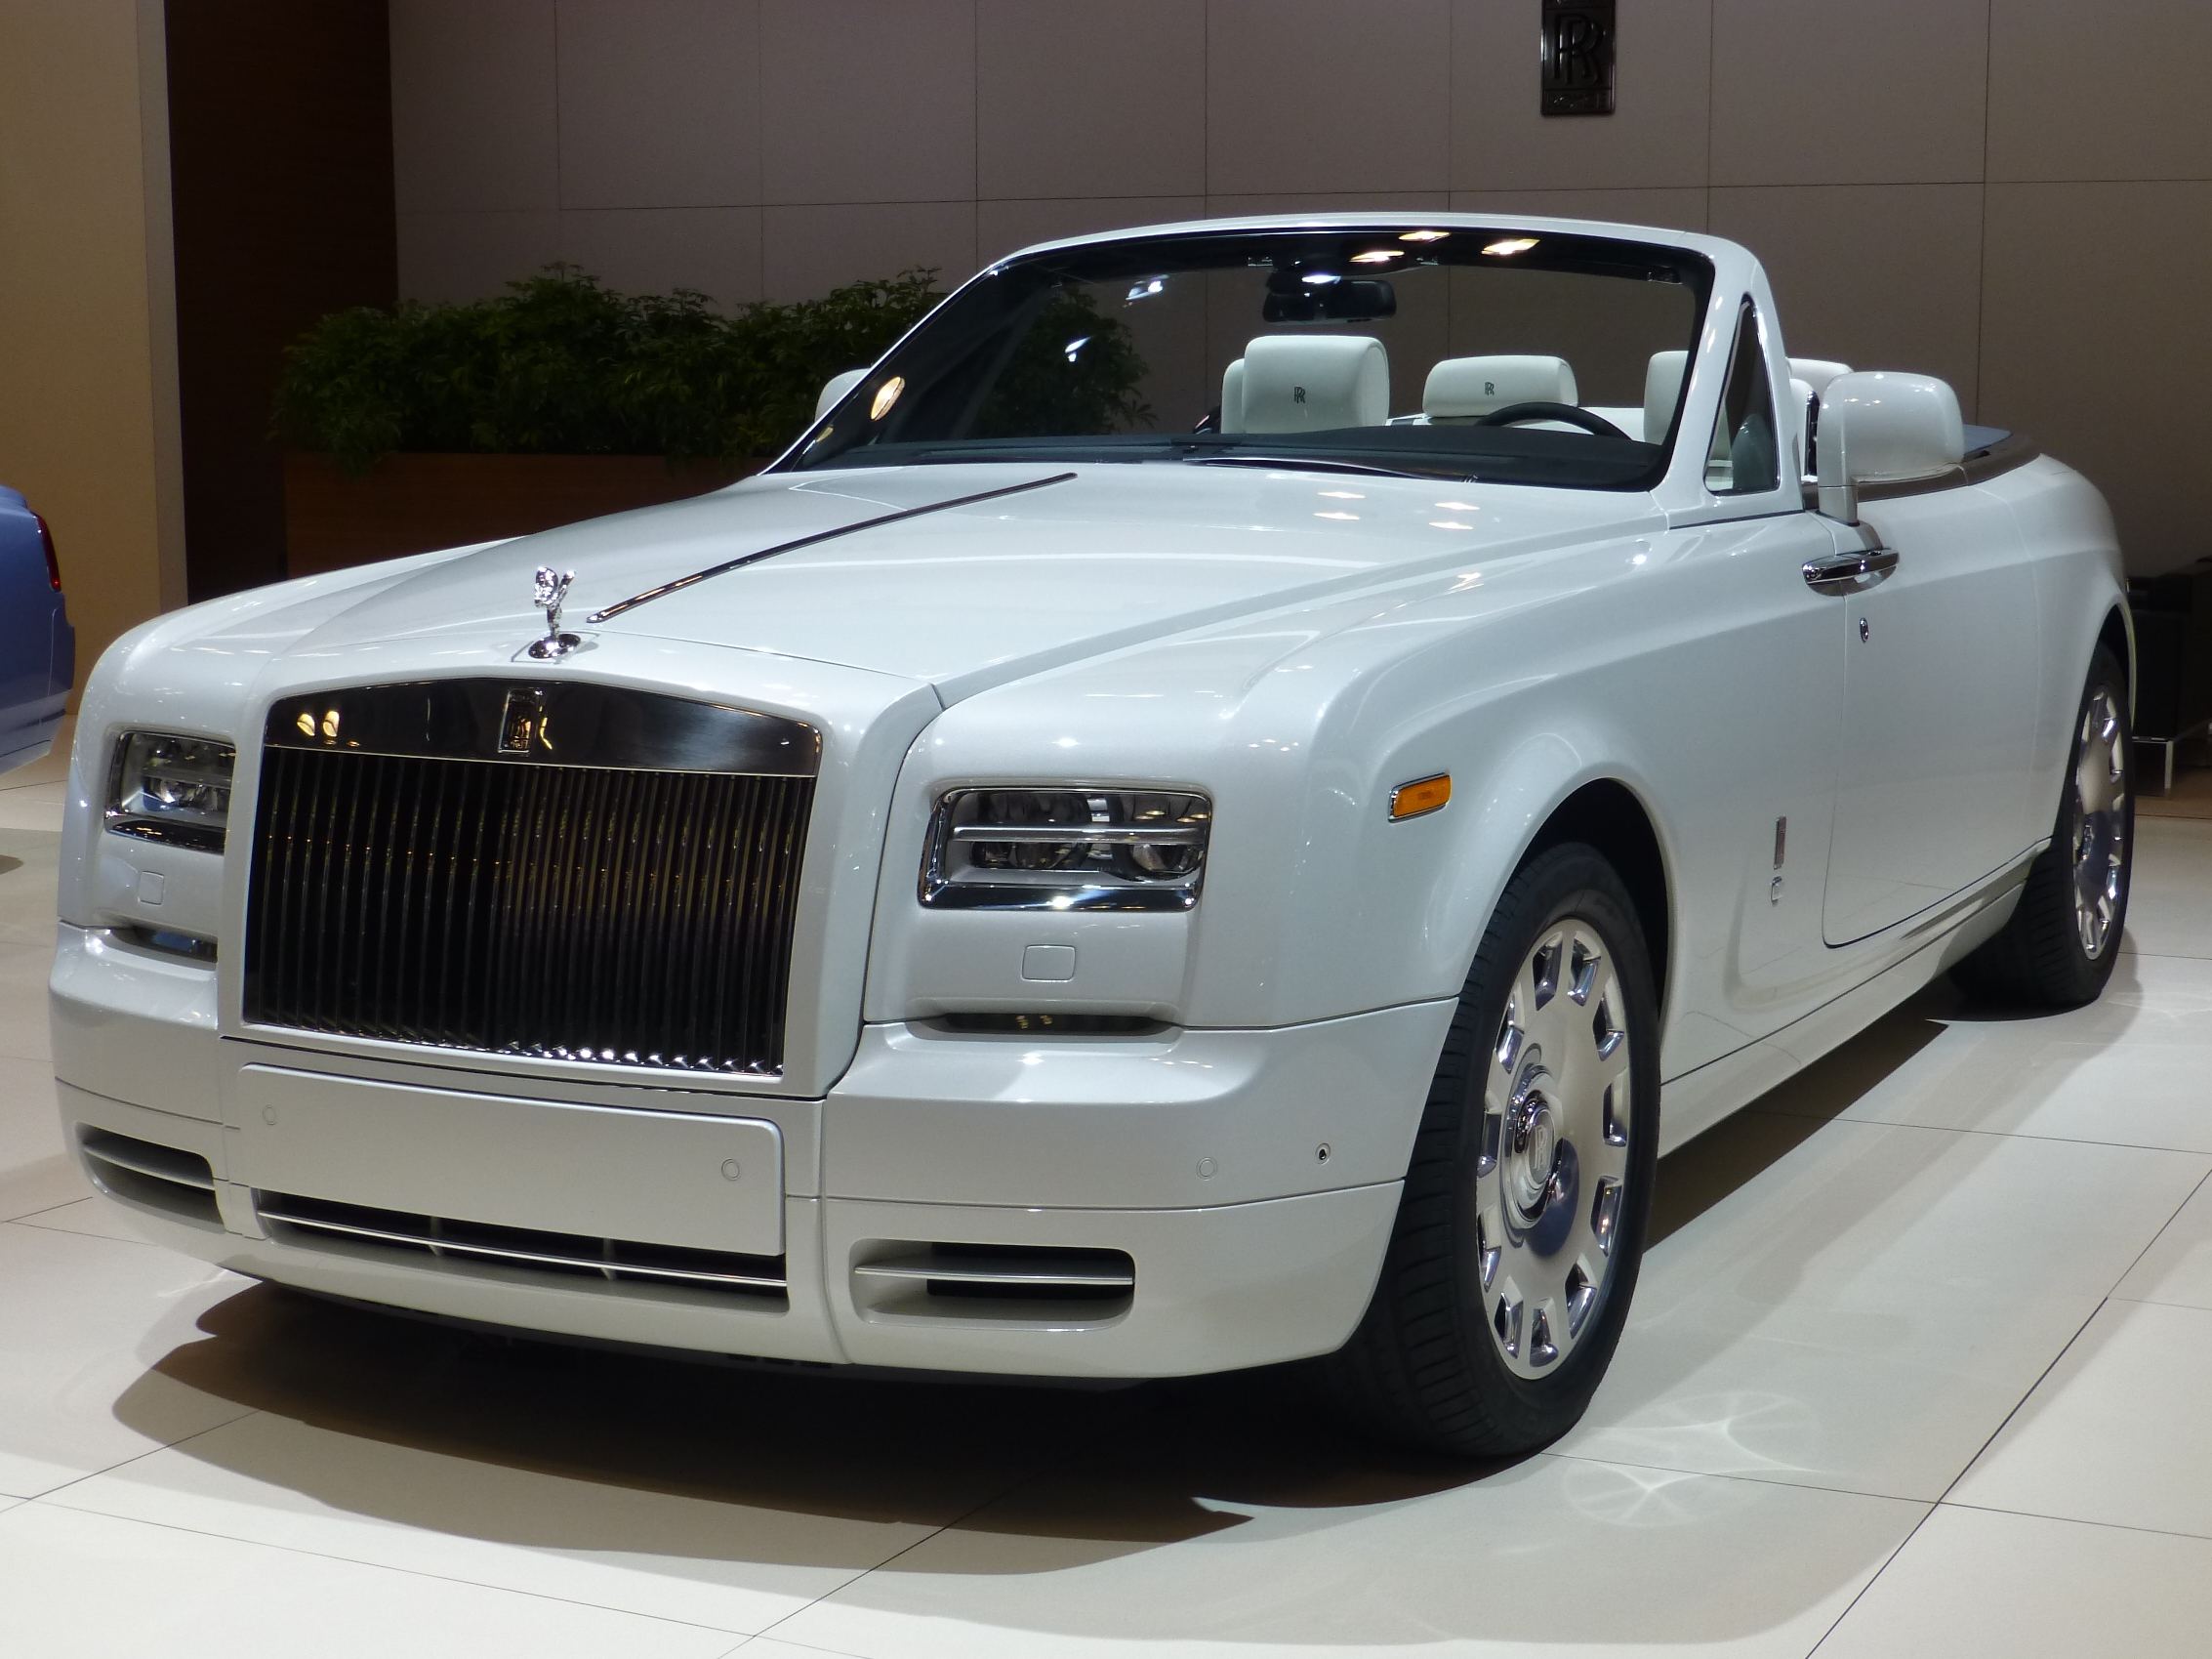 2014 Rolls royce Phantom Drophead Coupe #7